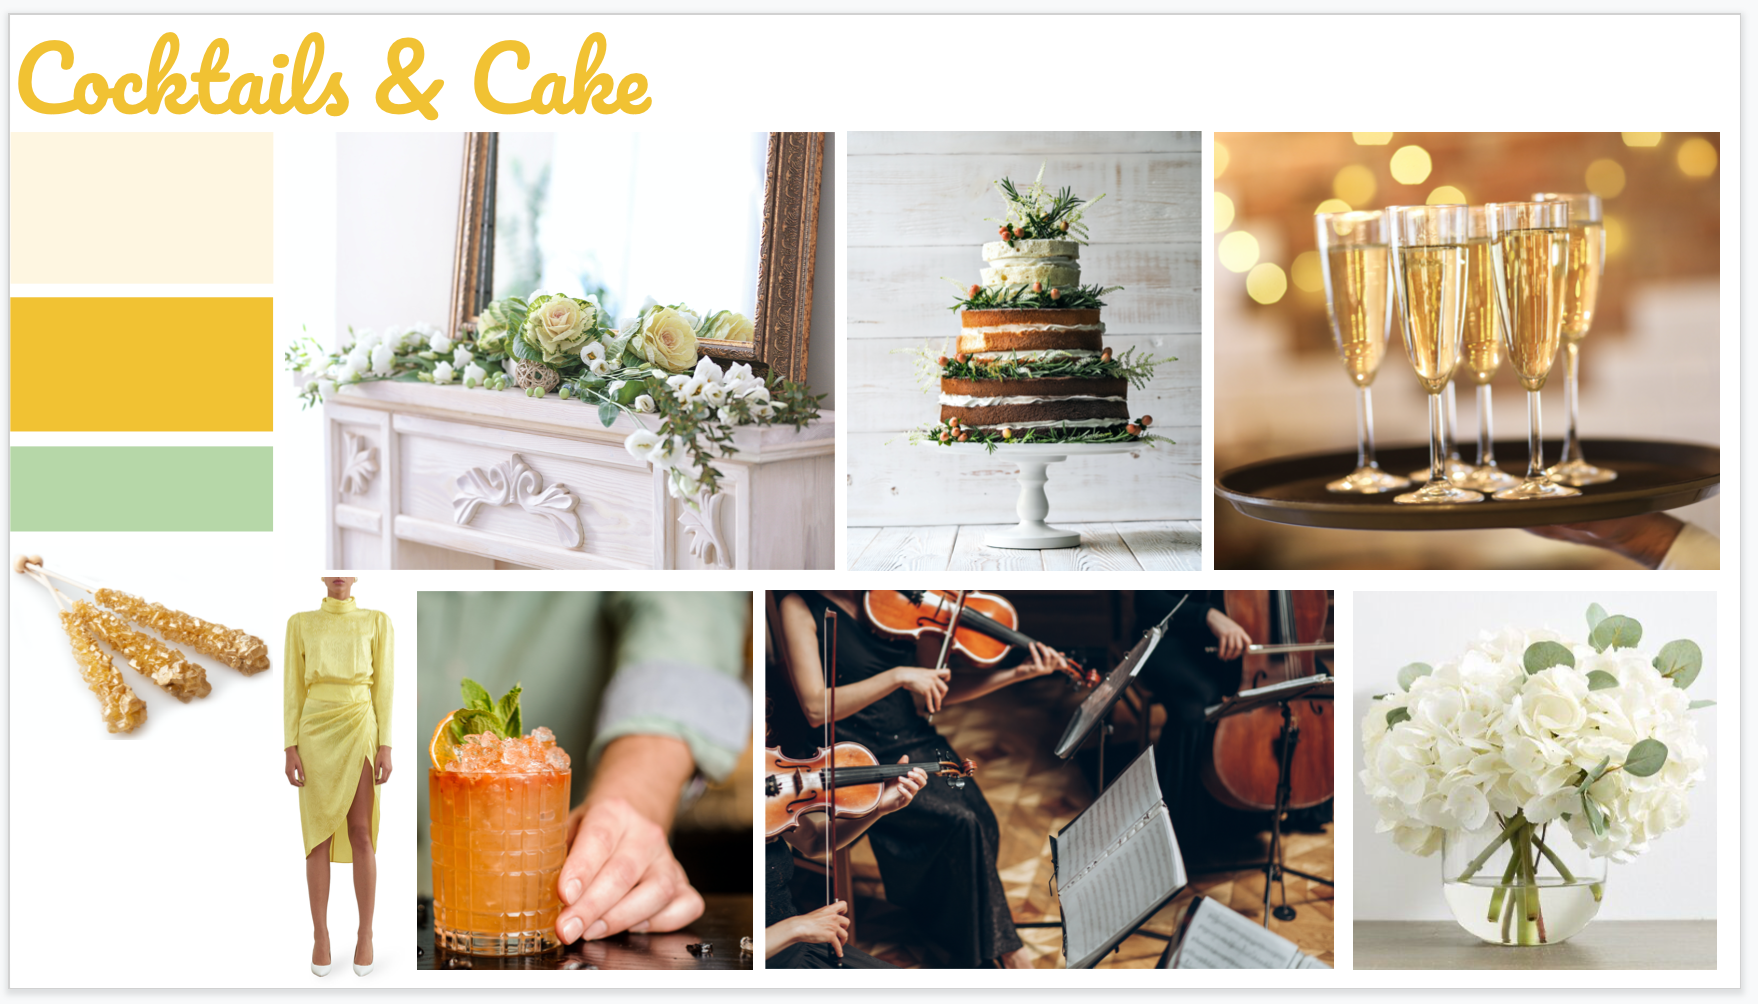 Cocktails & Cake Theme